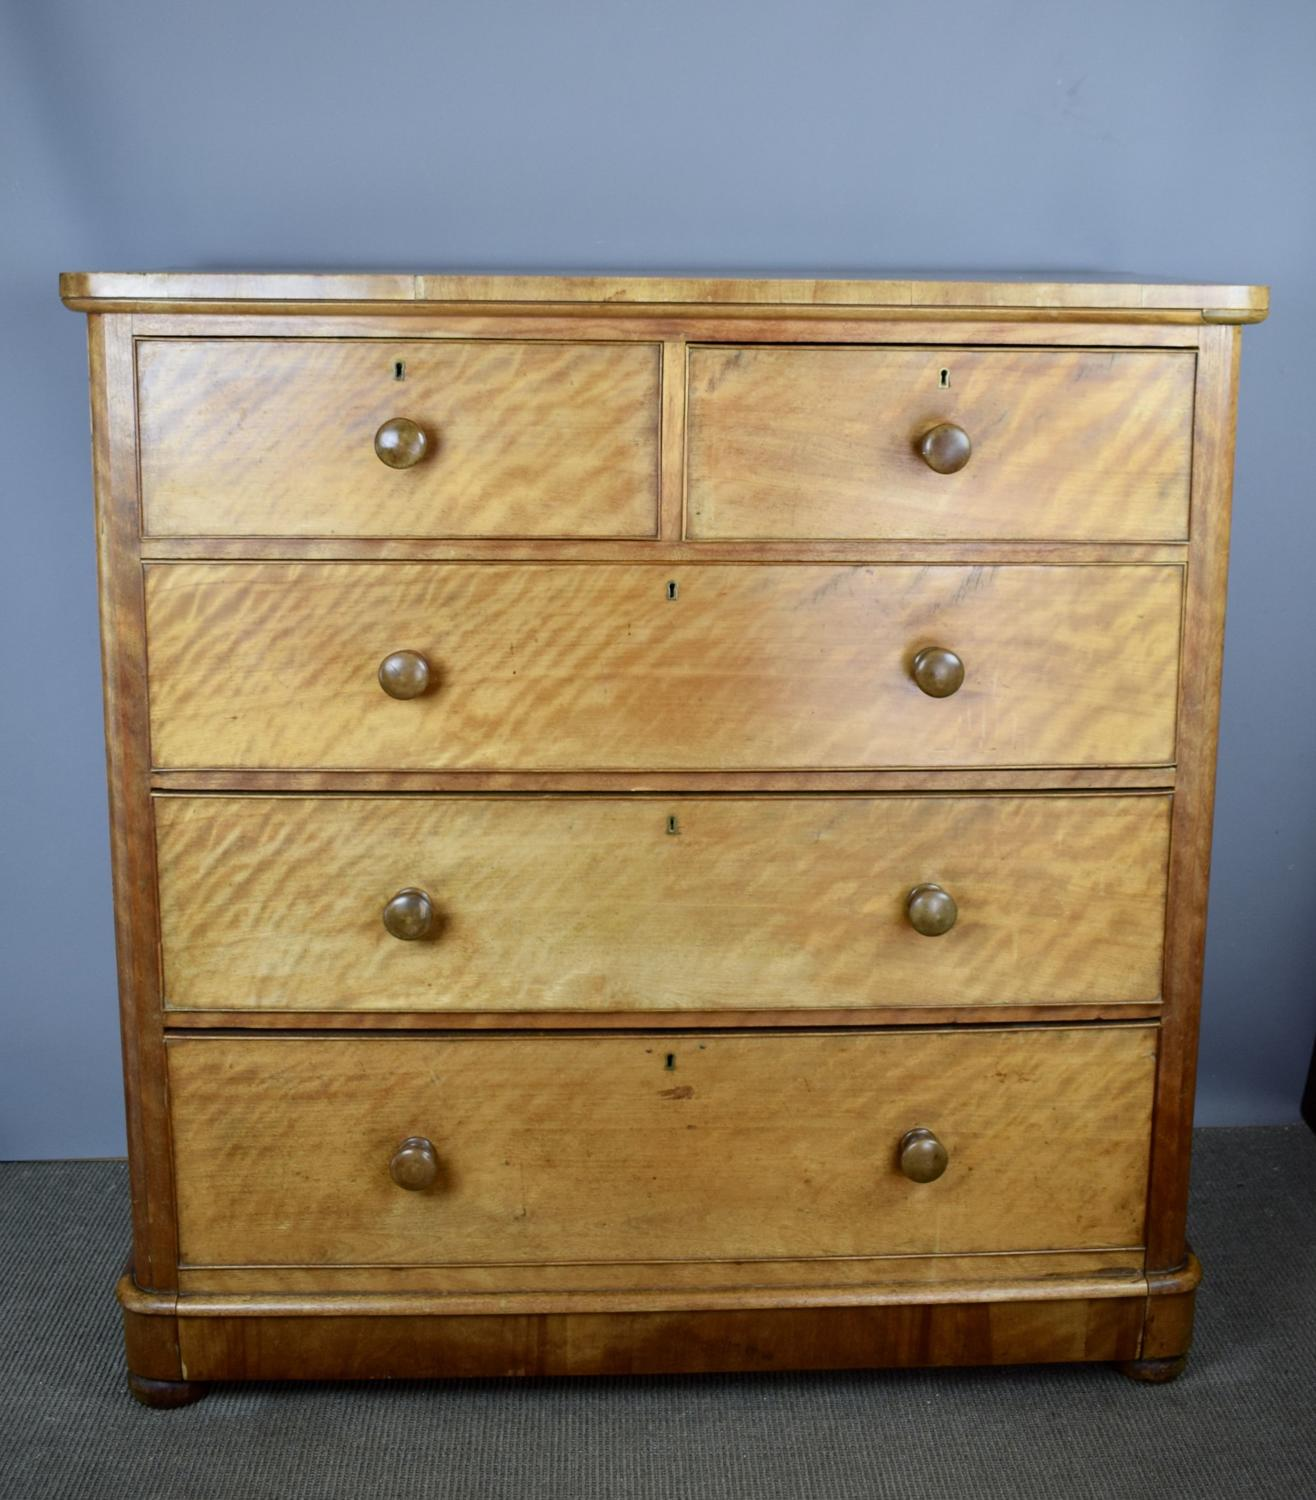 Victorian Satin Birch Chest of Drawers by Druce & Co.